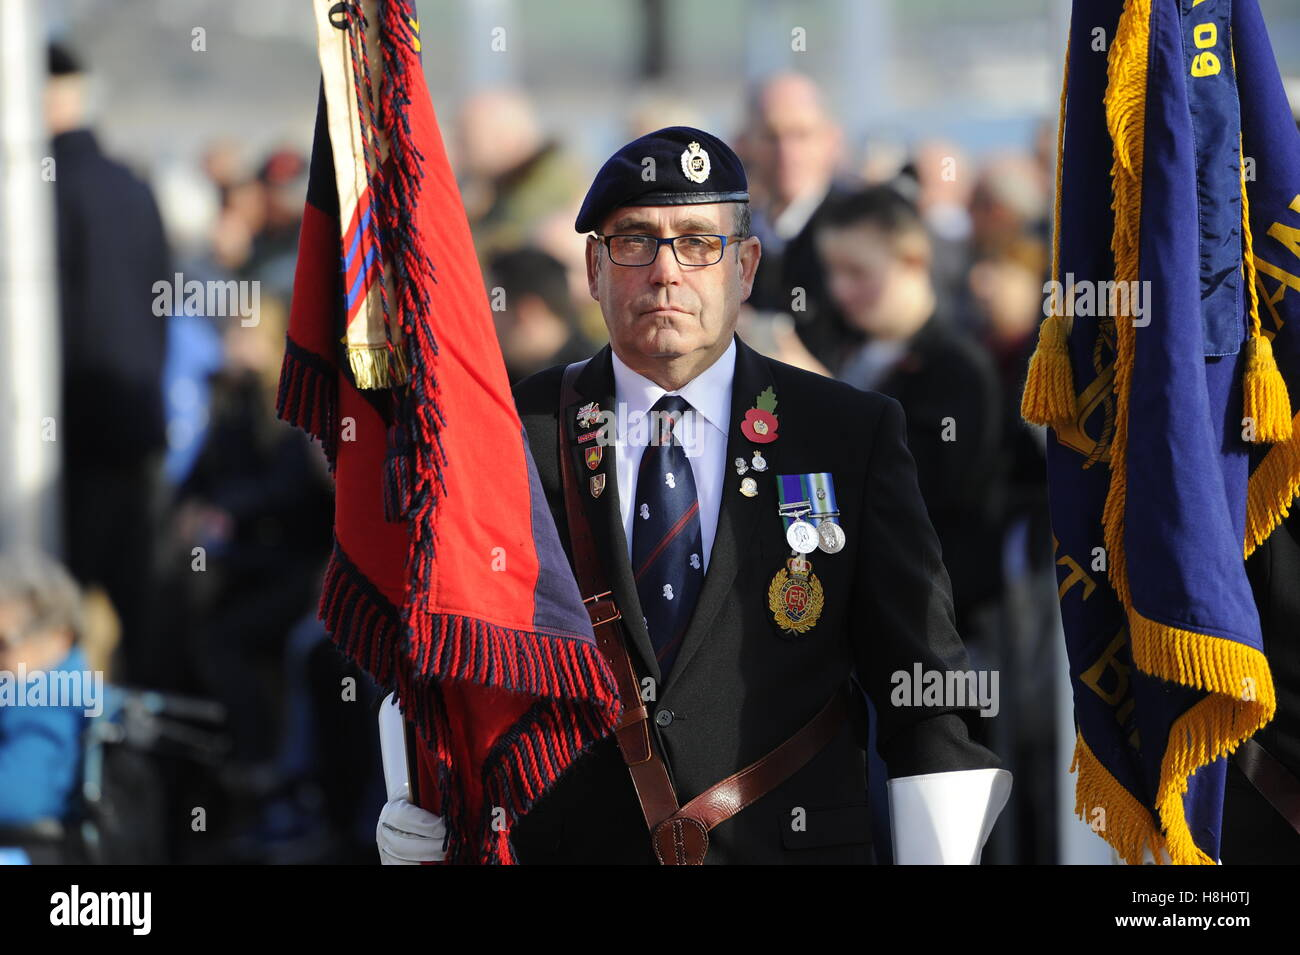 Weymouth, Dorset, UK. 13th November 2016. Standard Bearers during the Remembrance Sunday service and parade at the - Stock Image